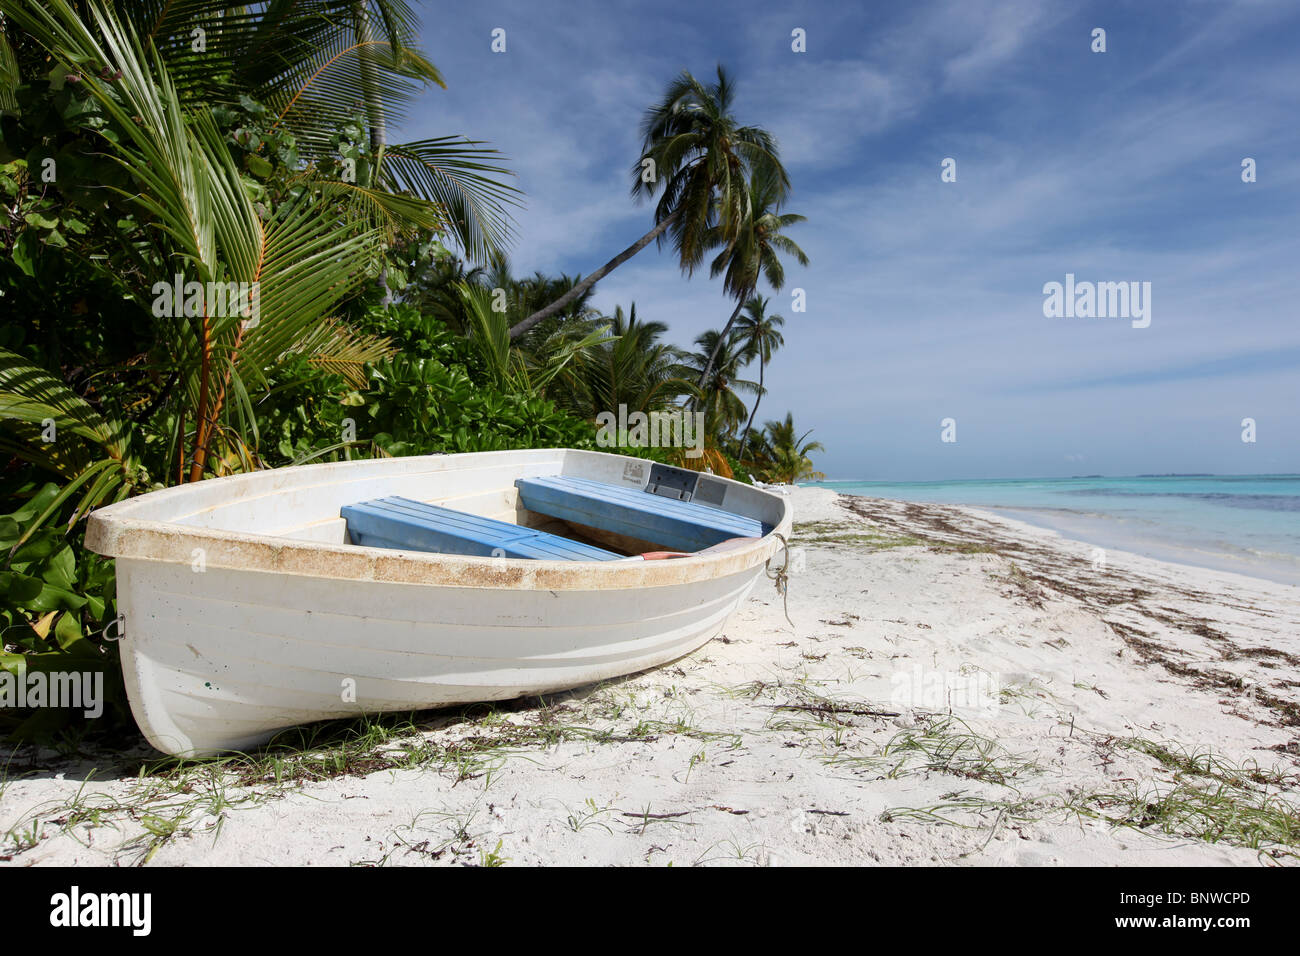 A white rowing boat on a deserted beach on Meeru Island Resort, Maldives, Asia - Stock Image